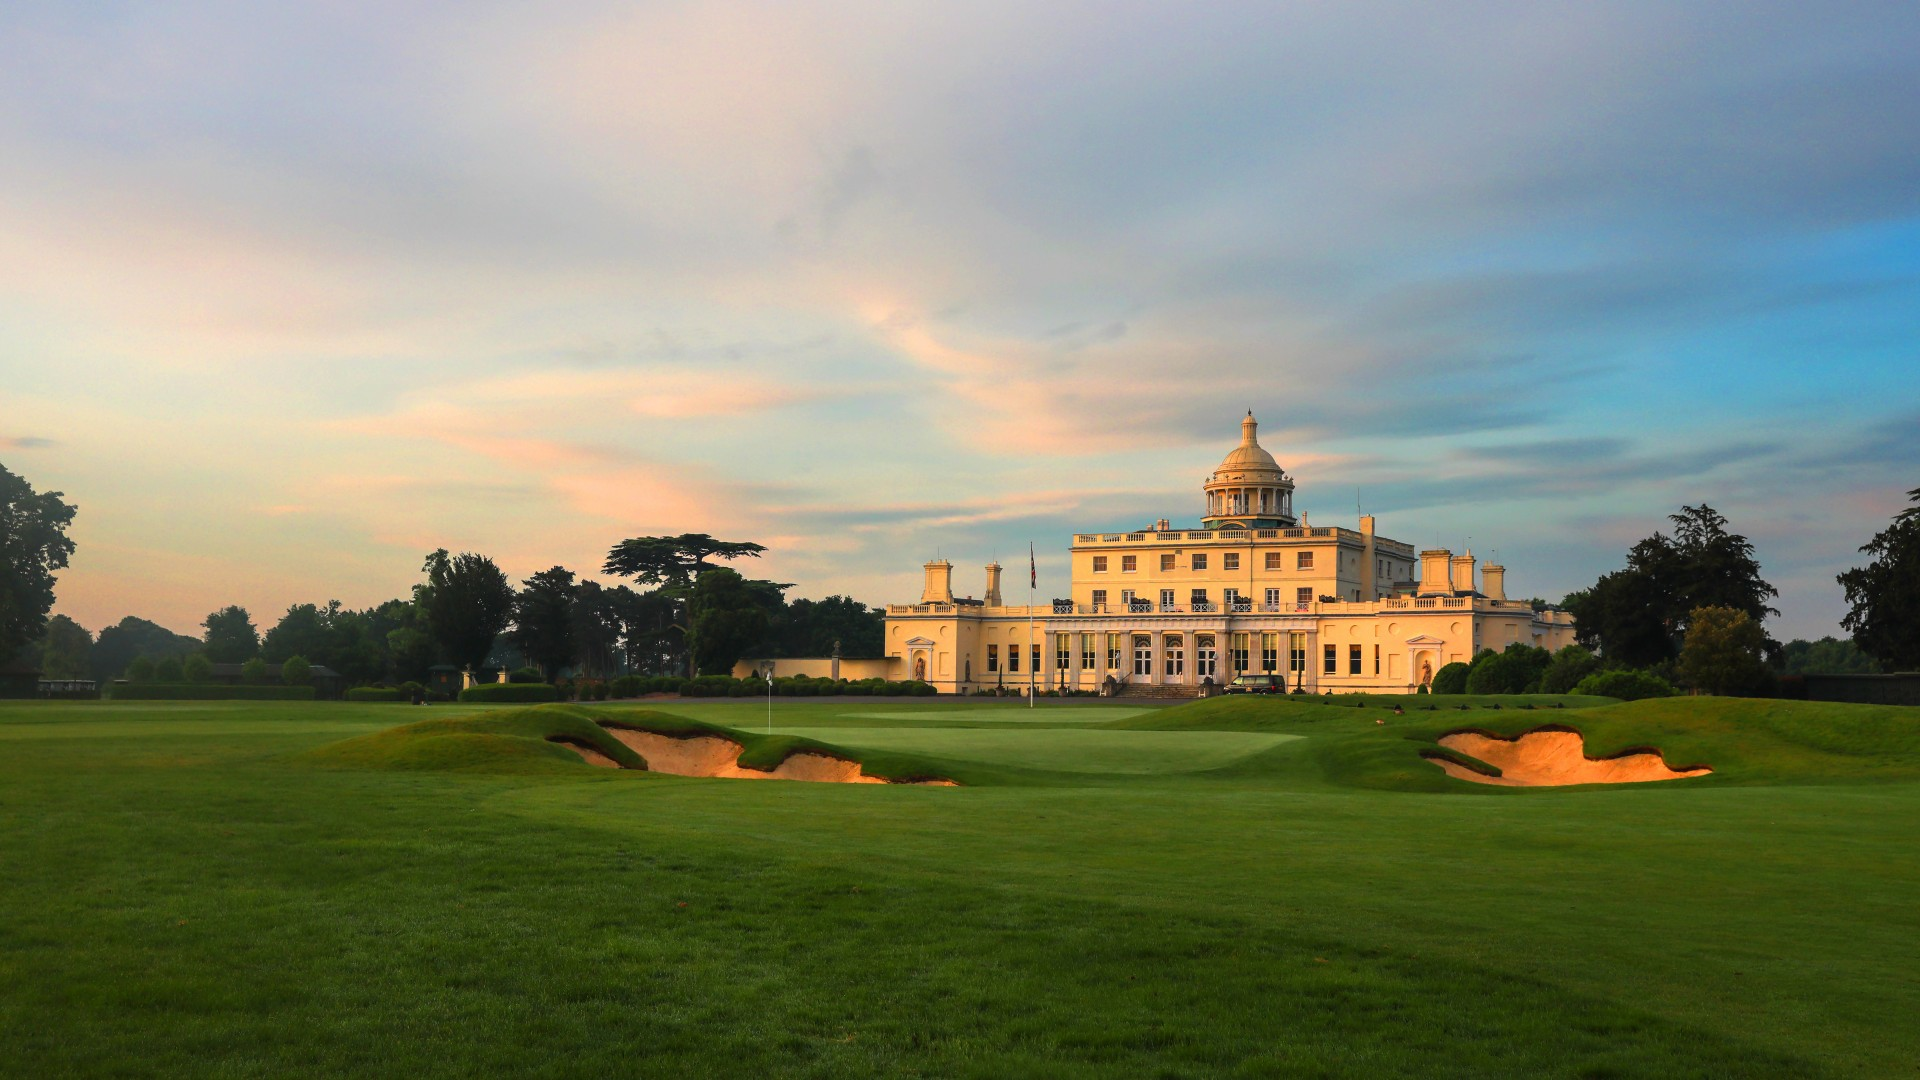 Stoke Park, England, Best UK Golf Resort, Square Mile Golf Awards 2017